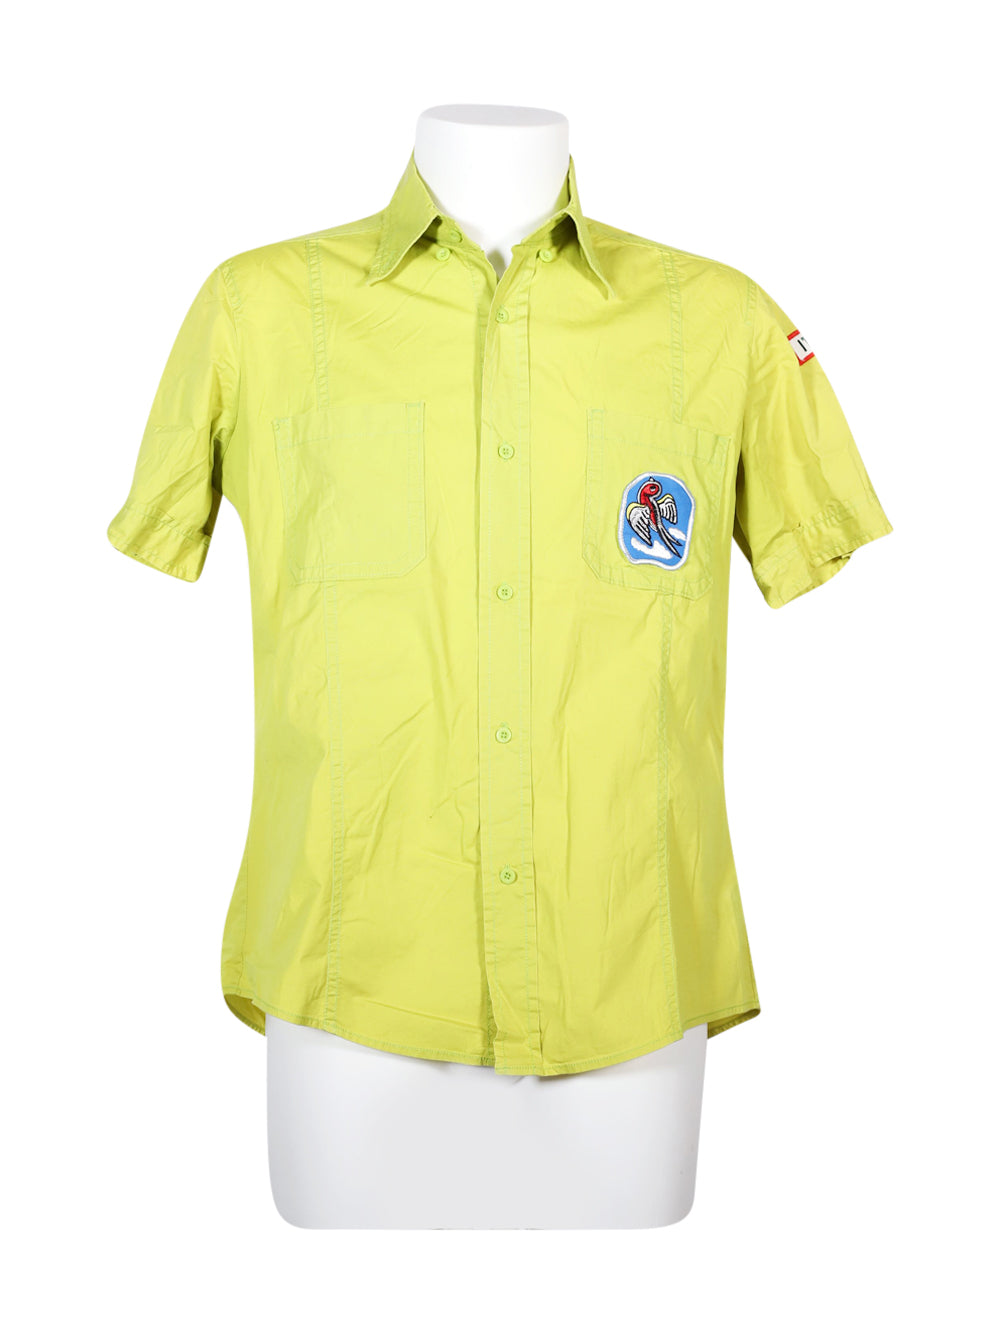 Front photo of Preloved rizard Green Man's shirt - size 42/XL